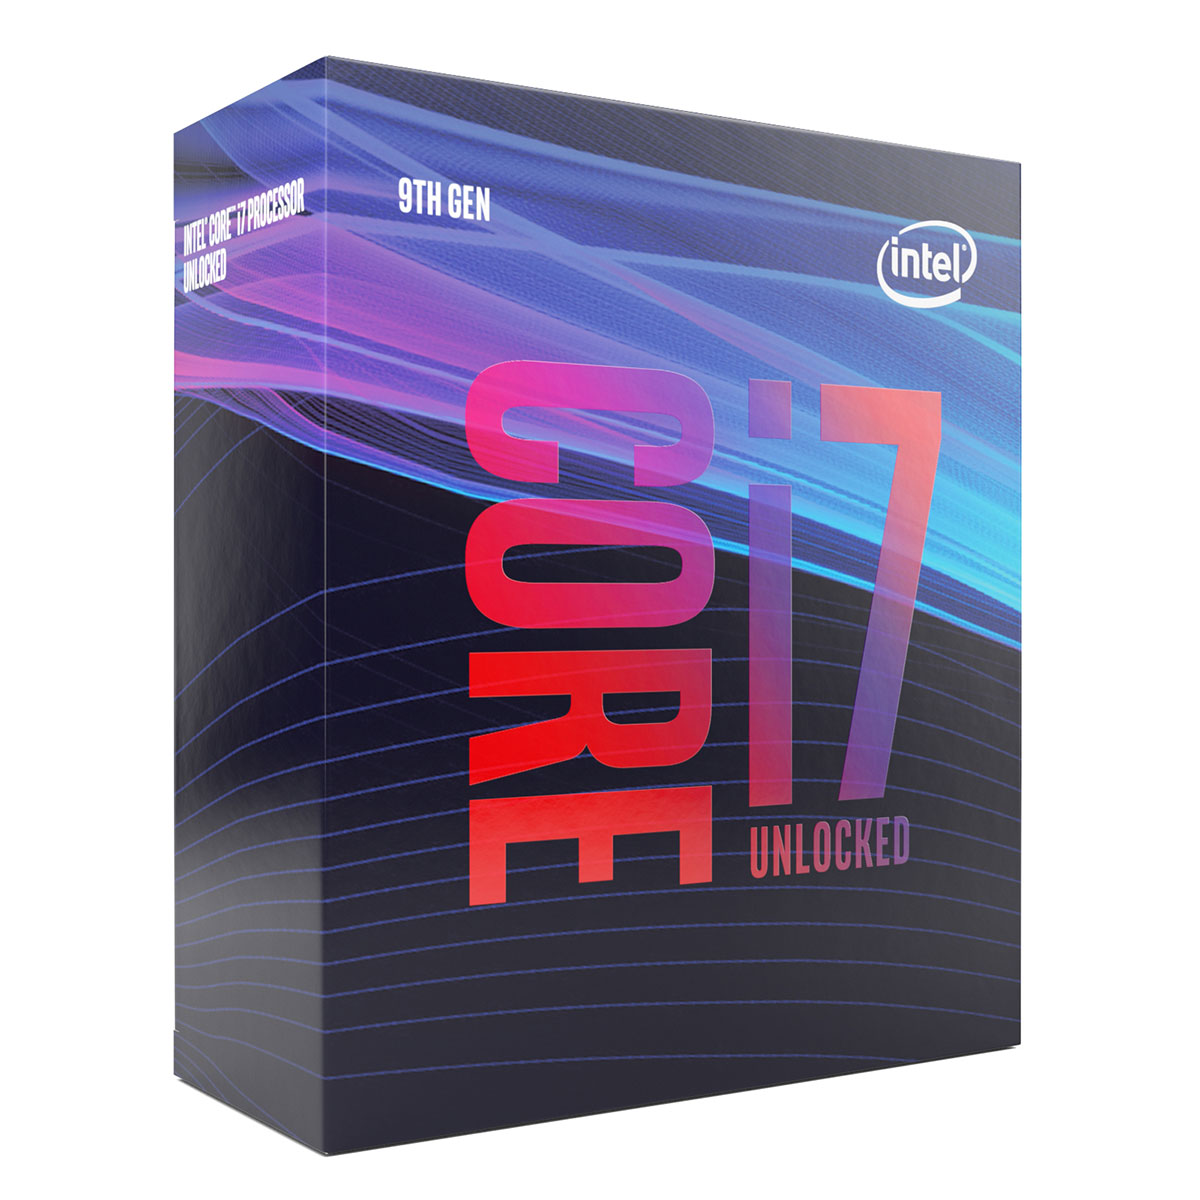 Processeur Intel Core i7-9700K (3.6 GHz / 4.9 GHz) Processeur 8-Core Socket 1151 Cache L3 12 Mo Intel UHD Graphics 630 0.014 micron (version boîte sans ventilateur - garantie Intel 3 ans)